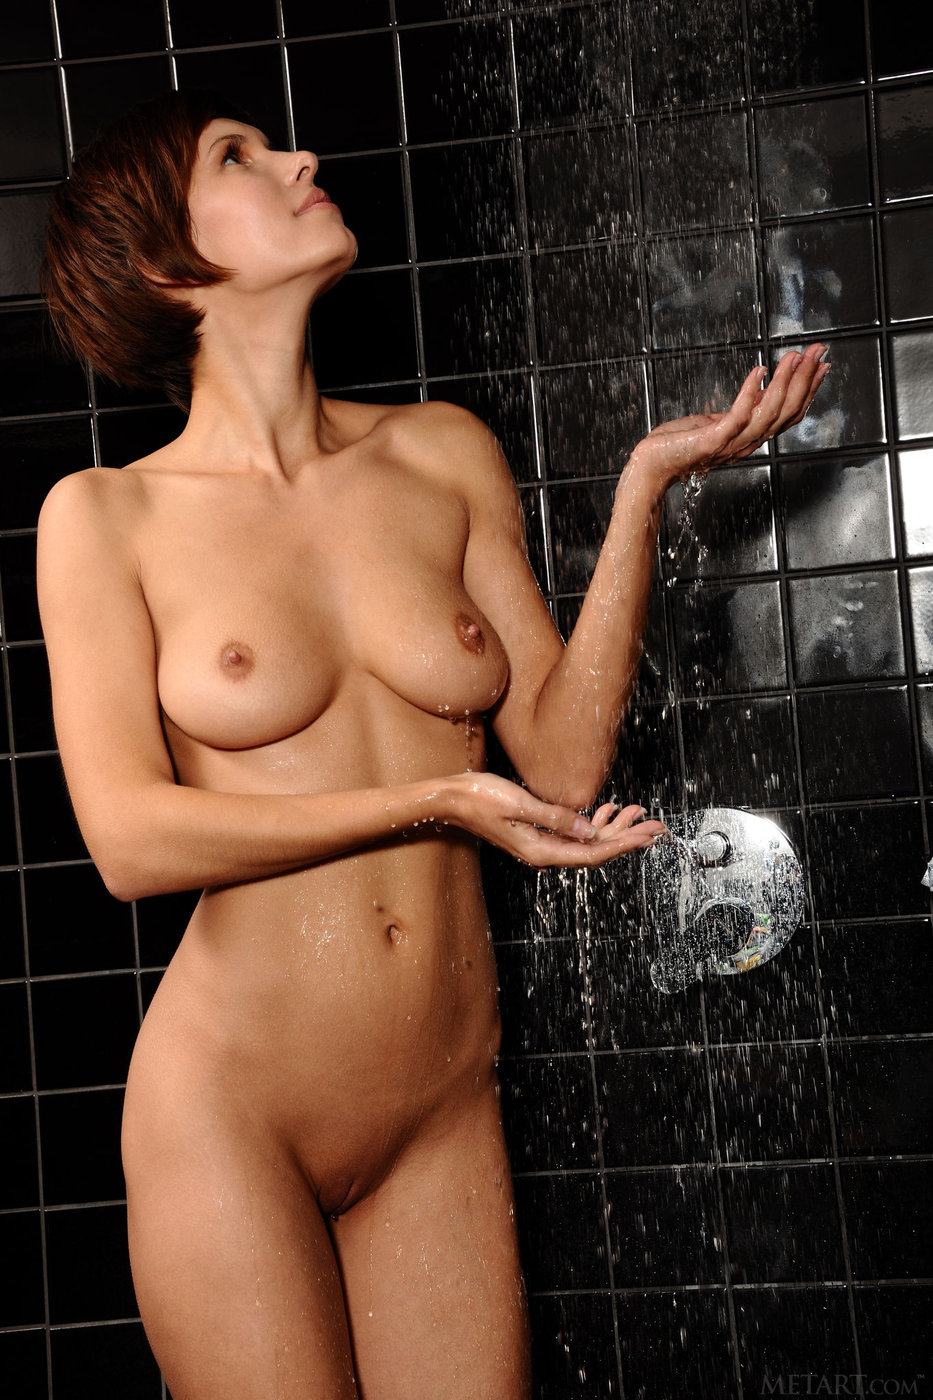 Brunettes naked in the shower